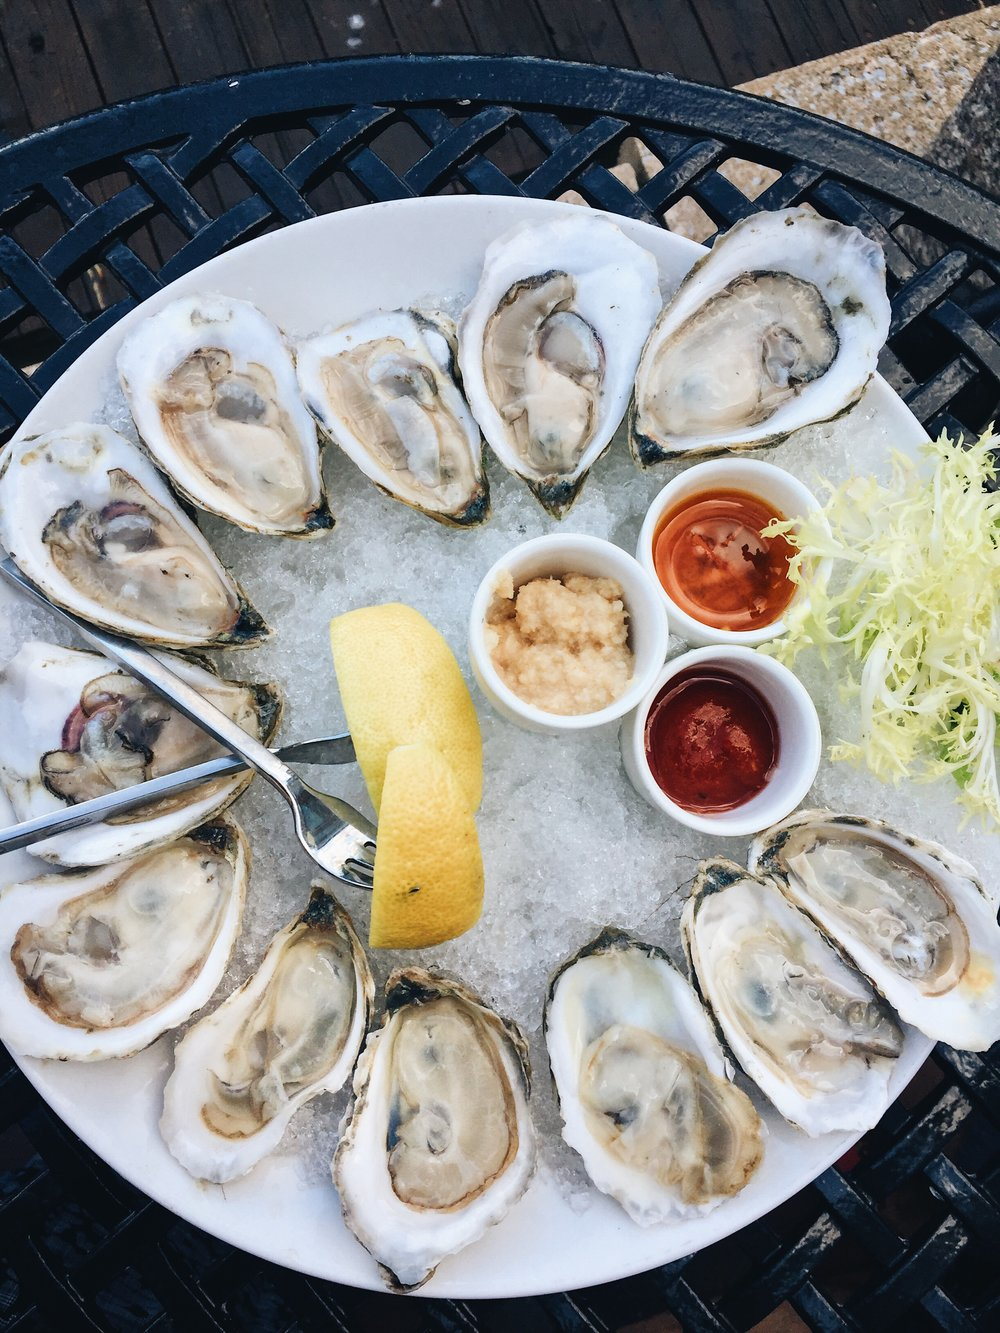 We shared a dozen of oysters because why not?